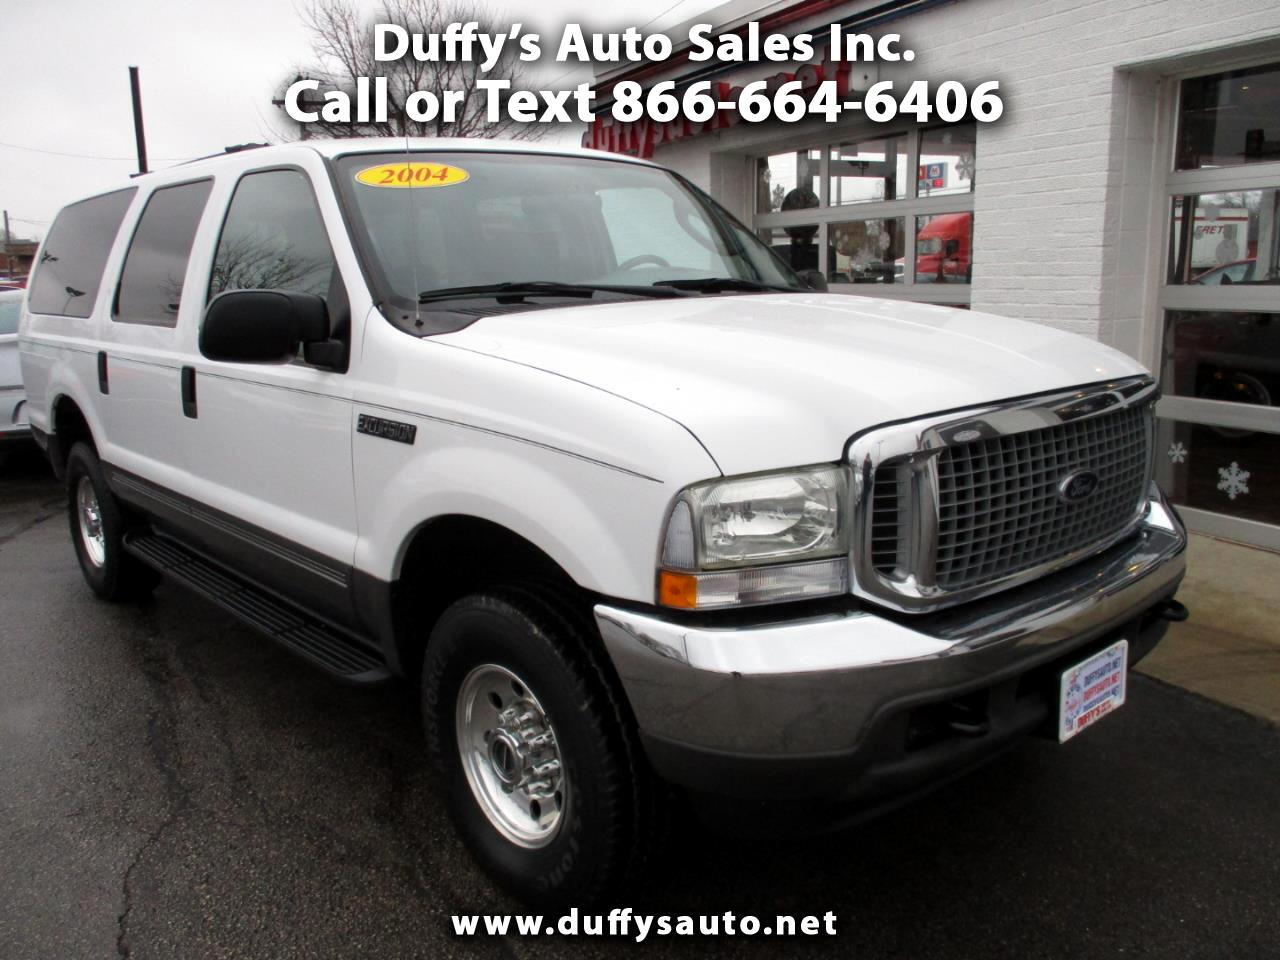 2004 Ford Excursion XLT 5.4 Liter V8 4WD